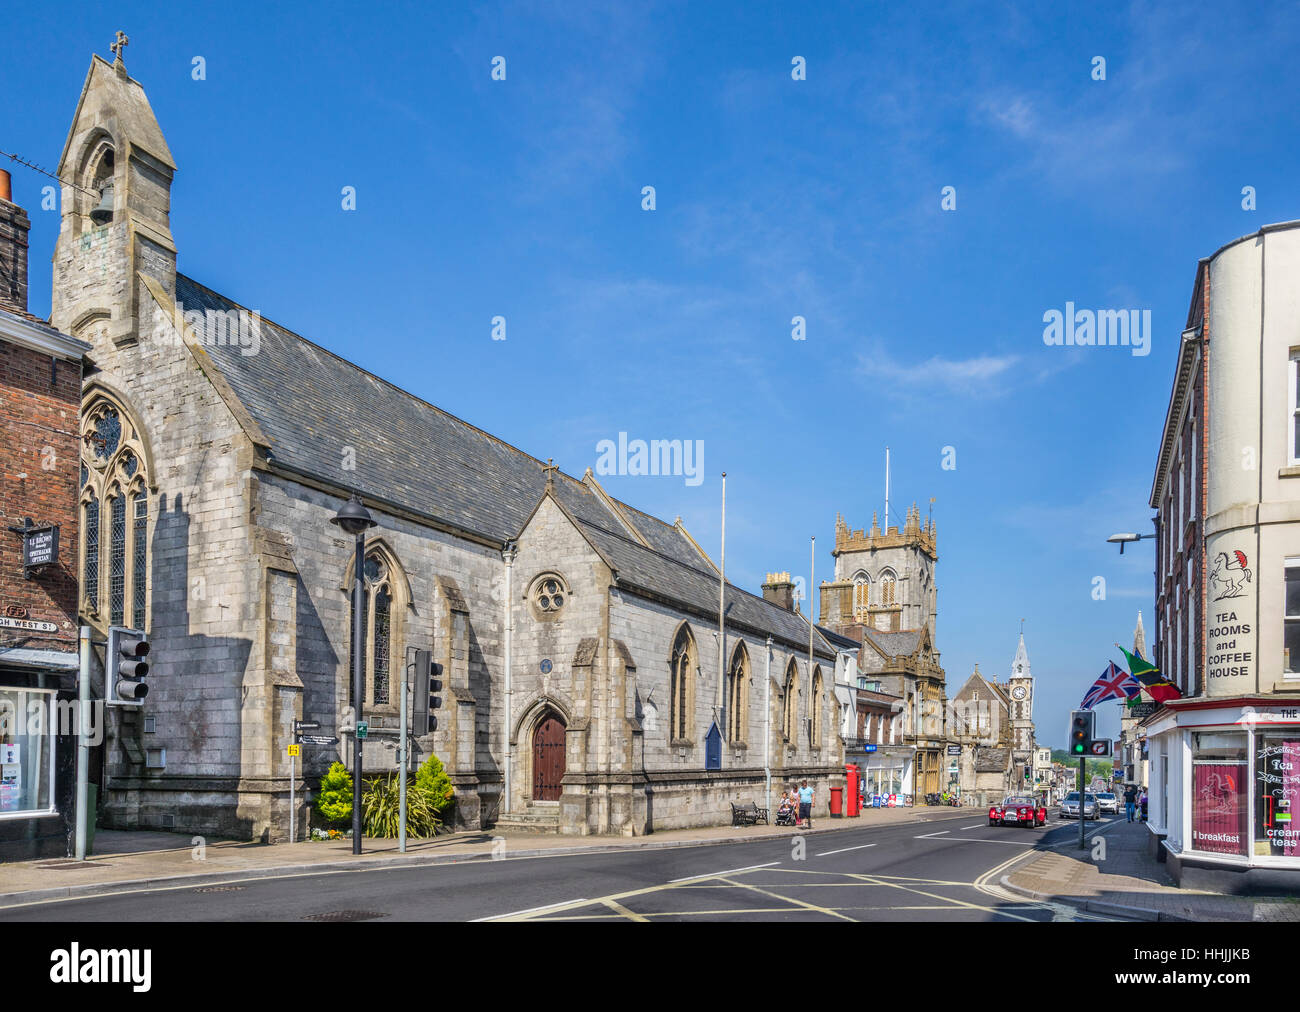 Great Britain, Dorset, Dorchester, High West Street, view of Holy Trinity Catholic Church - Stock Image